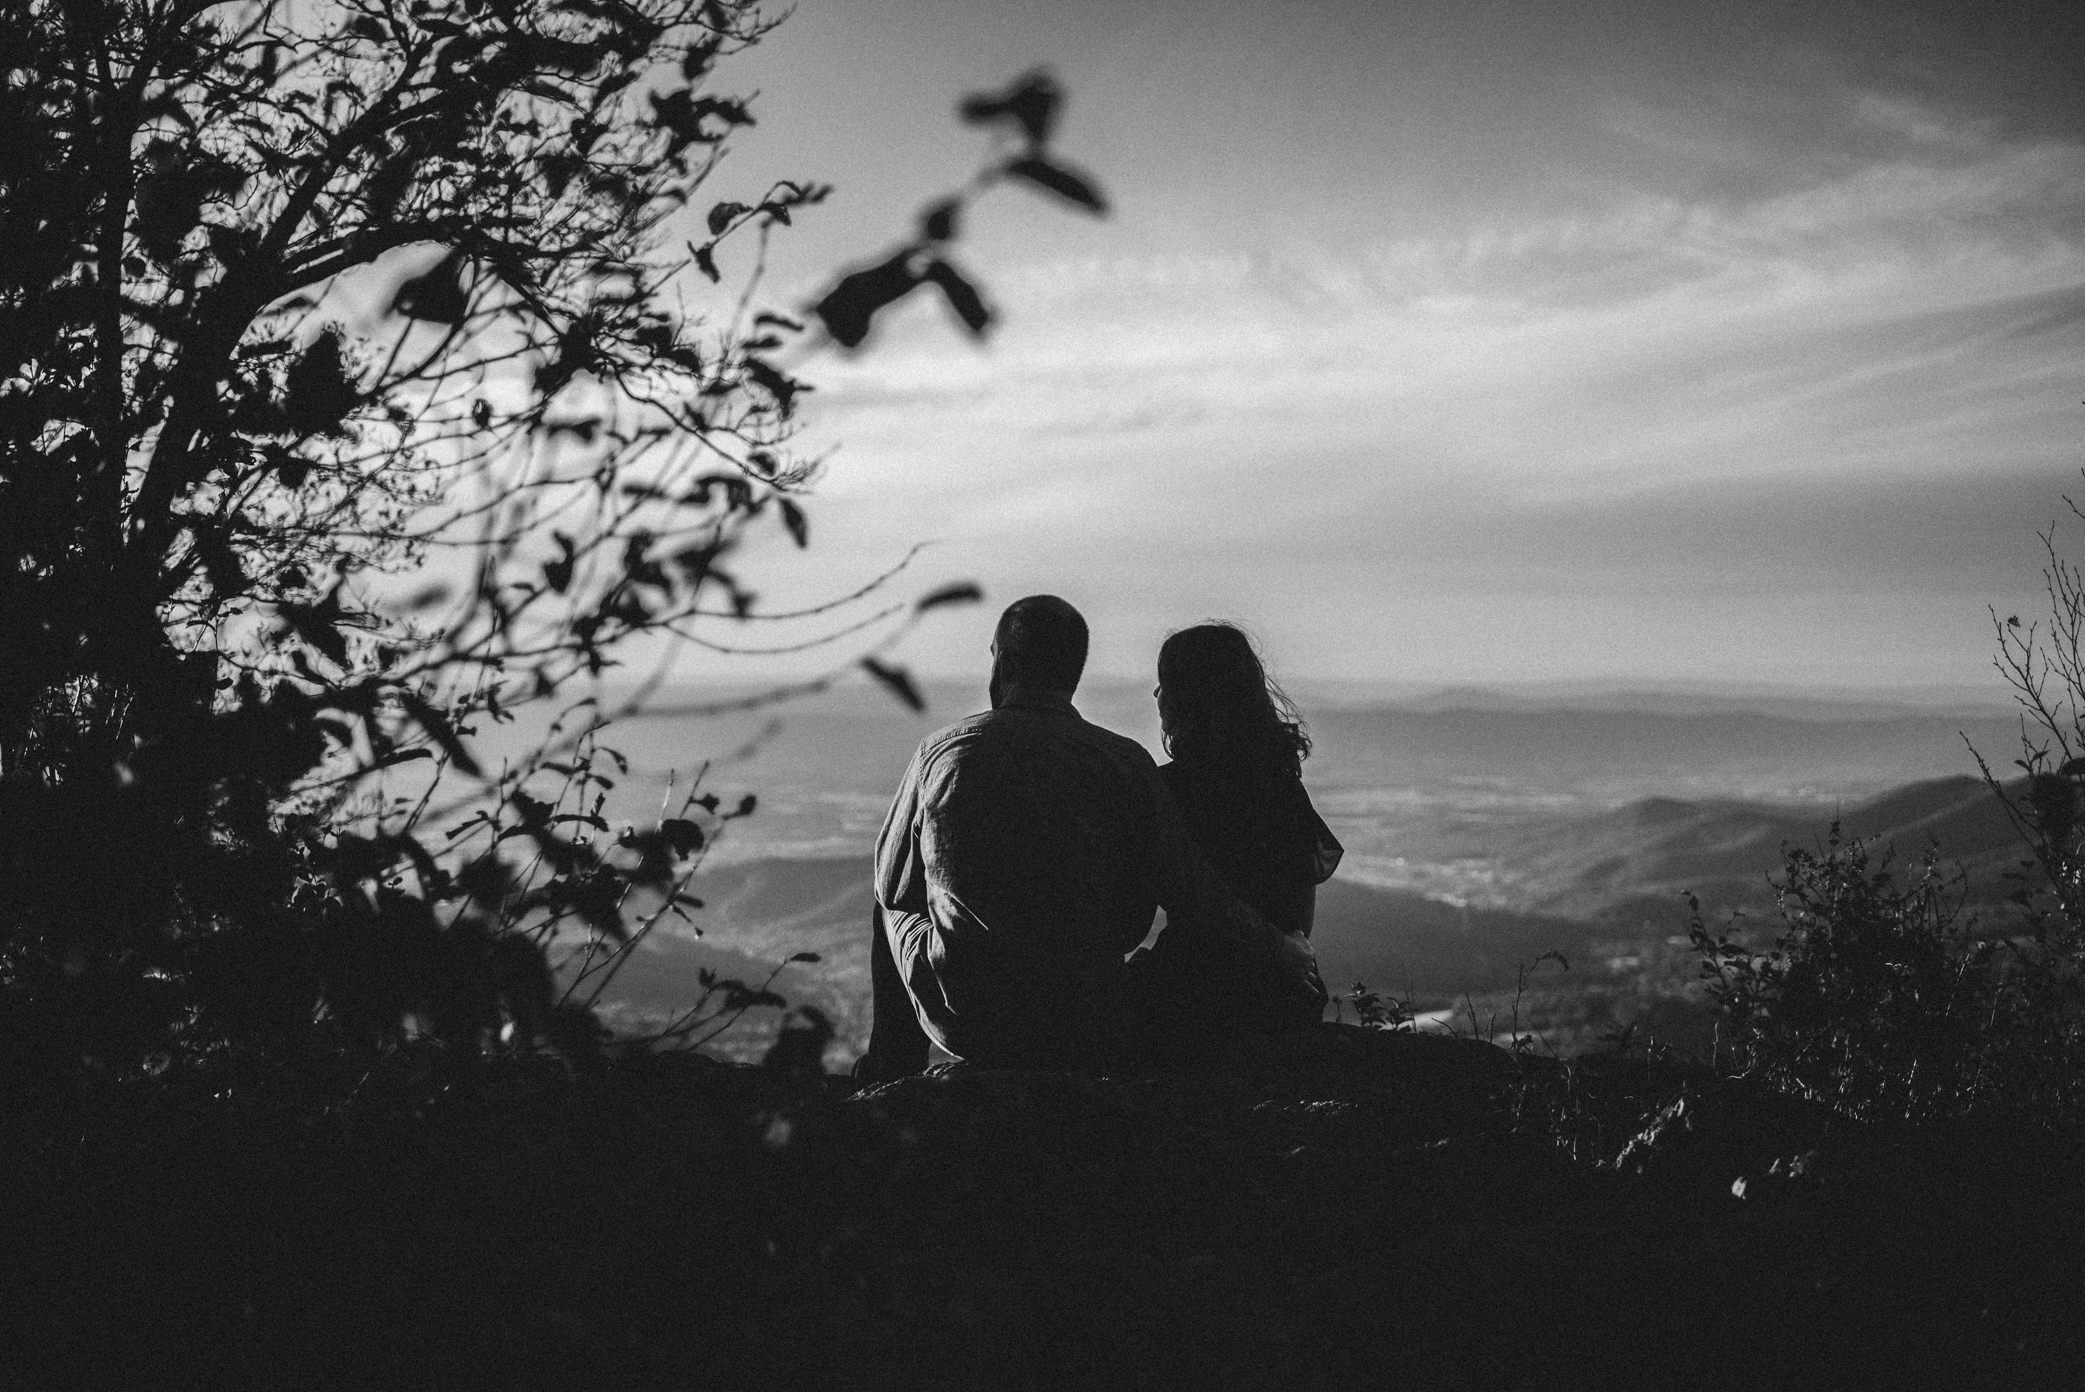 Molly and Zach Engagement Session - Fall Autumn Sunset Couple Adventure Session - Shenandoah National Park - Blue Ridge Parkway Skyline Drive - White Sails Creative_4.JPG